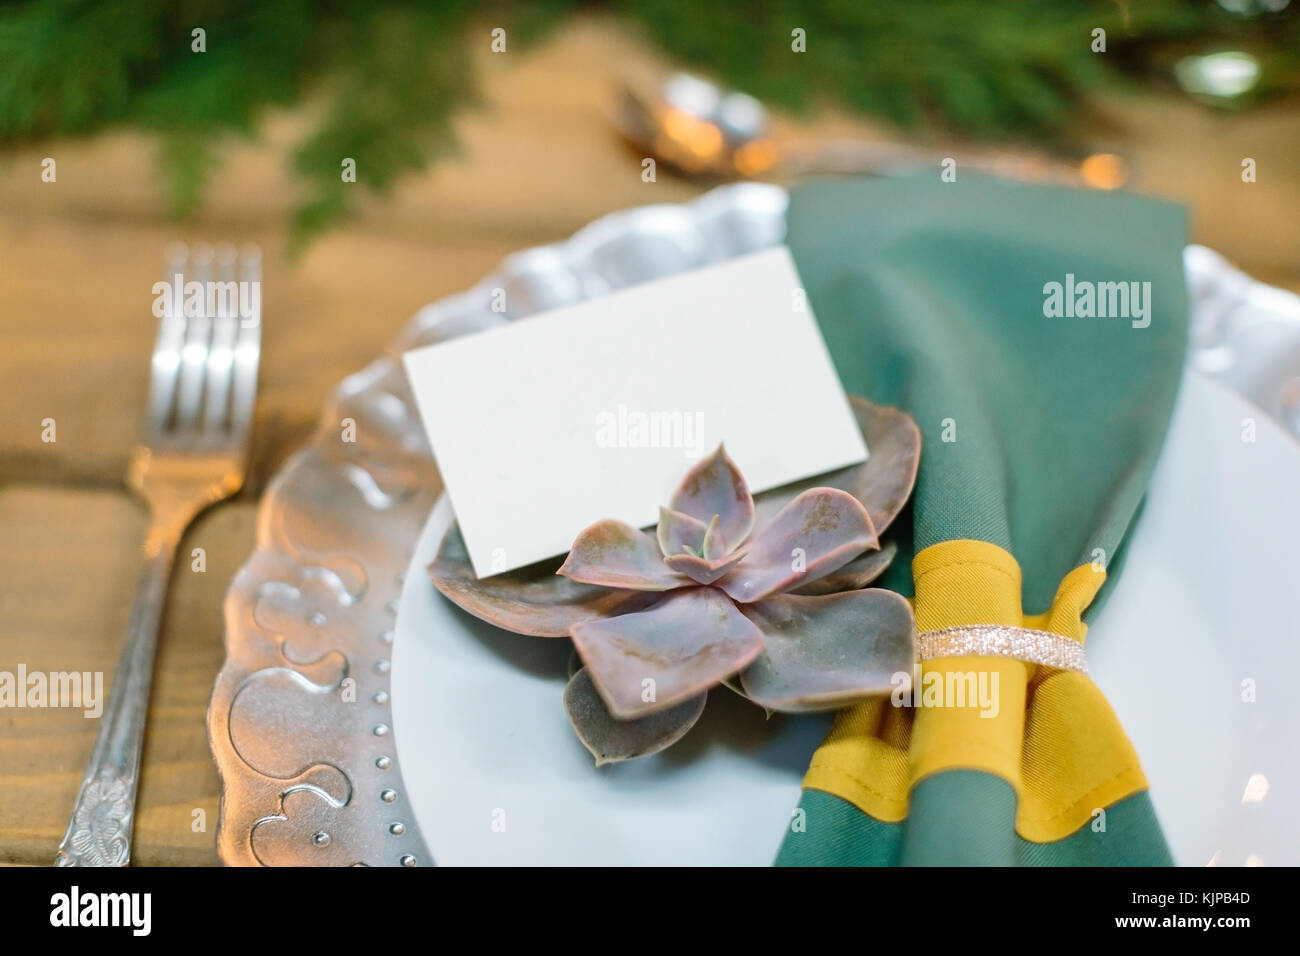 restaurant, dining, poligraphy concept. in the plate with white center and wavy silver glowing edge there is green - Stock Image